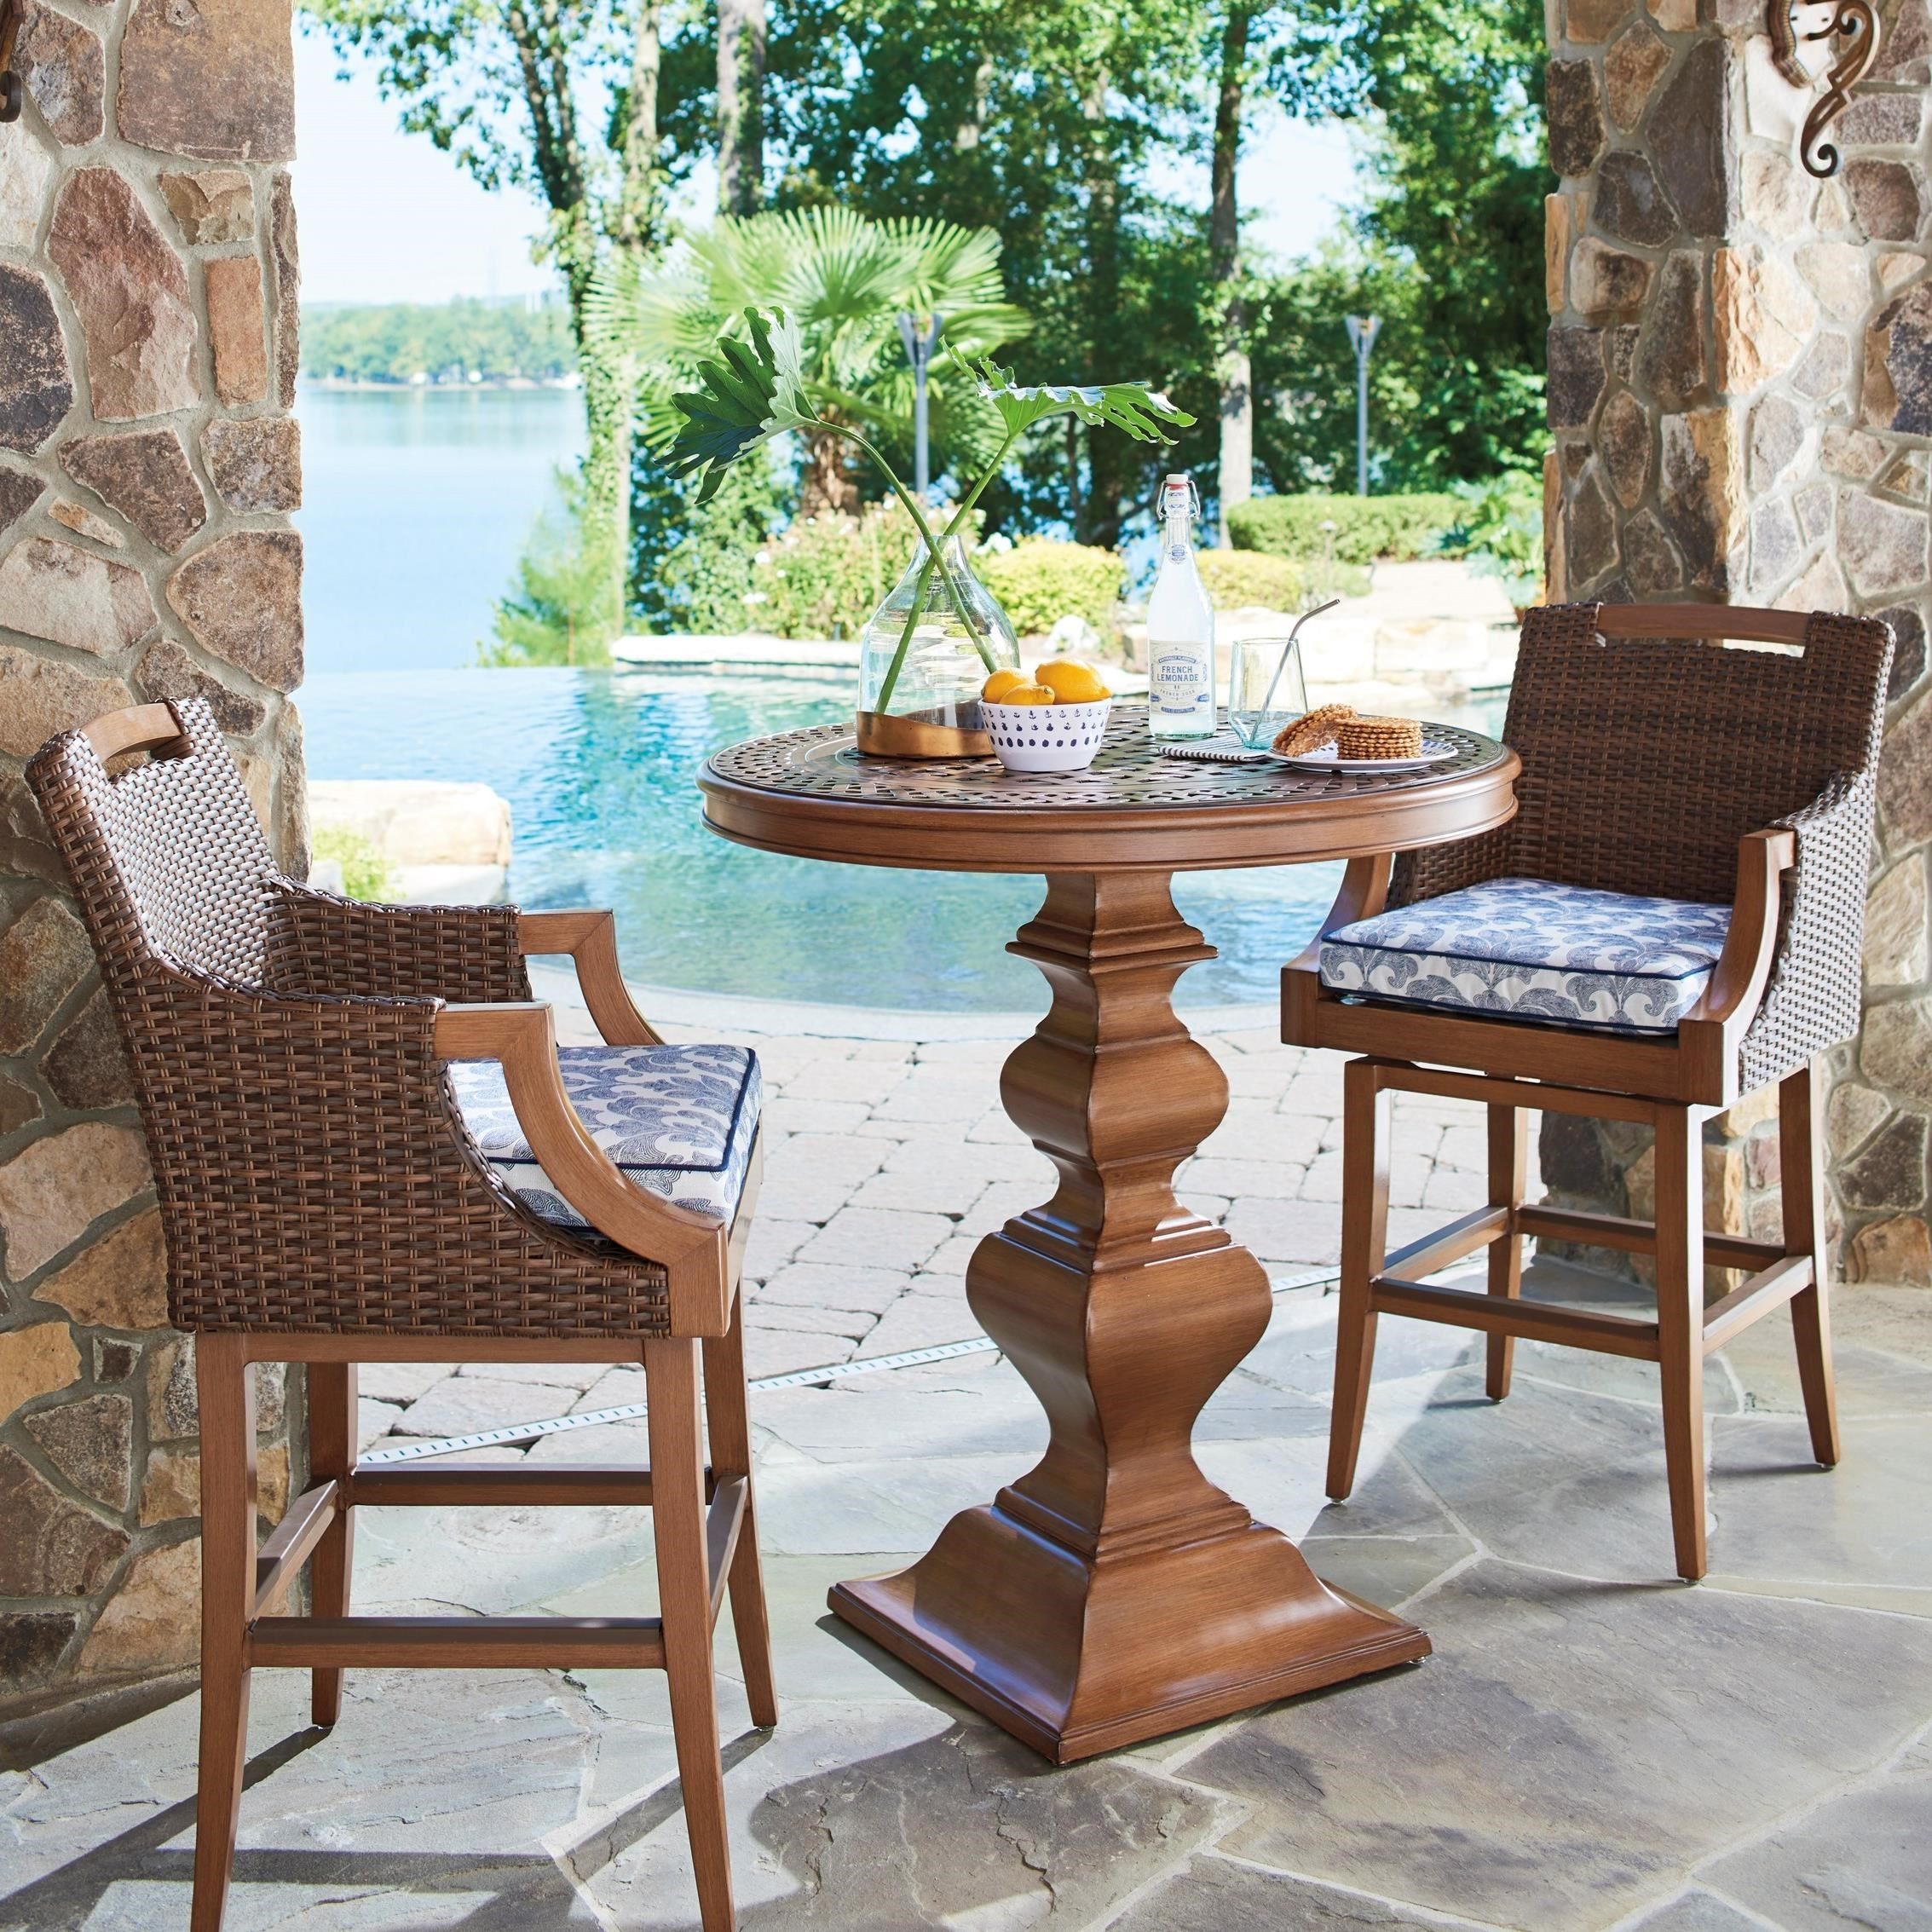 Harbor Isle 3-Piece Outdoor Bistro Set w/ Bar Stools by Tommy Bahama Outdoor Living at Baer's Furniture